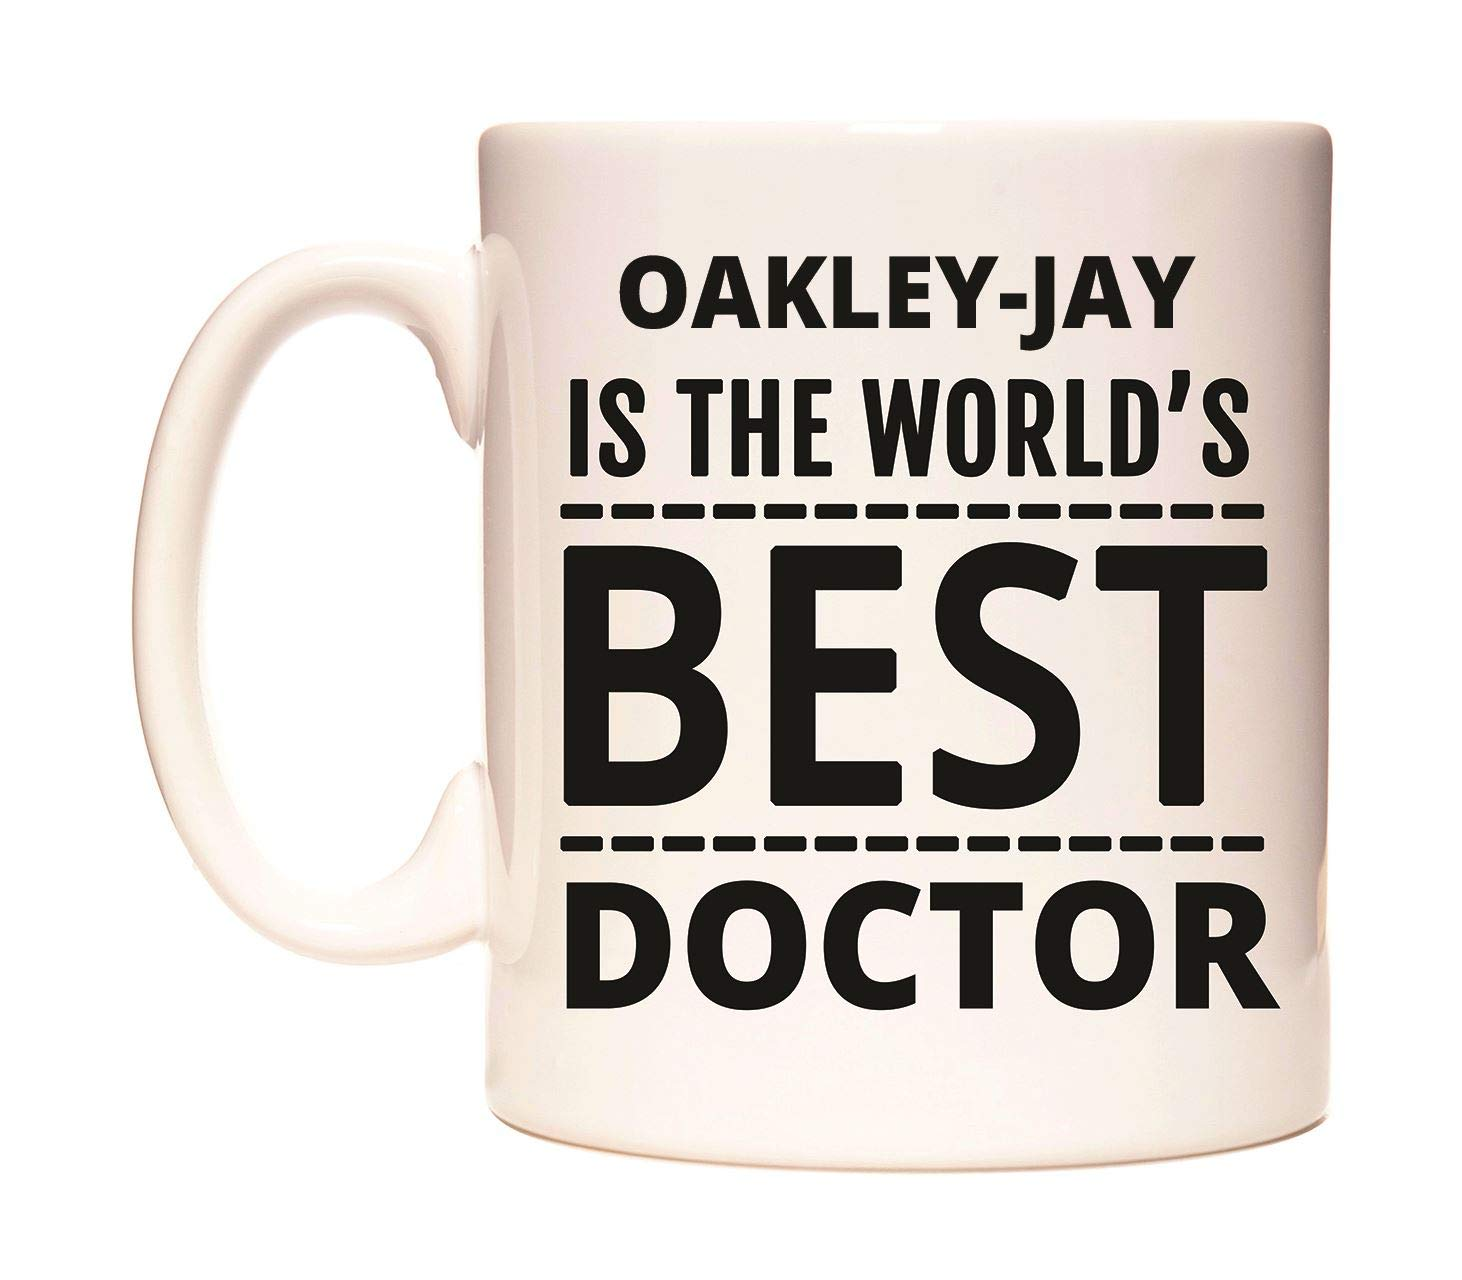 OAKLEY-JAY IS THE WORLDS BEST DOCTOR Taza por WeDoMugs: Amazon.es: Hogar